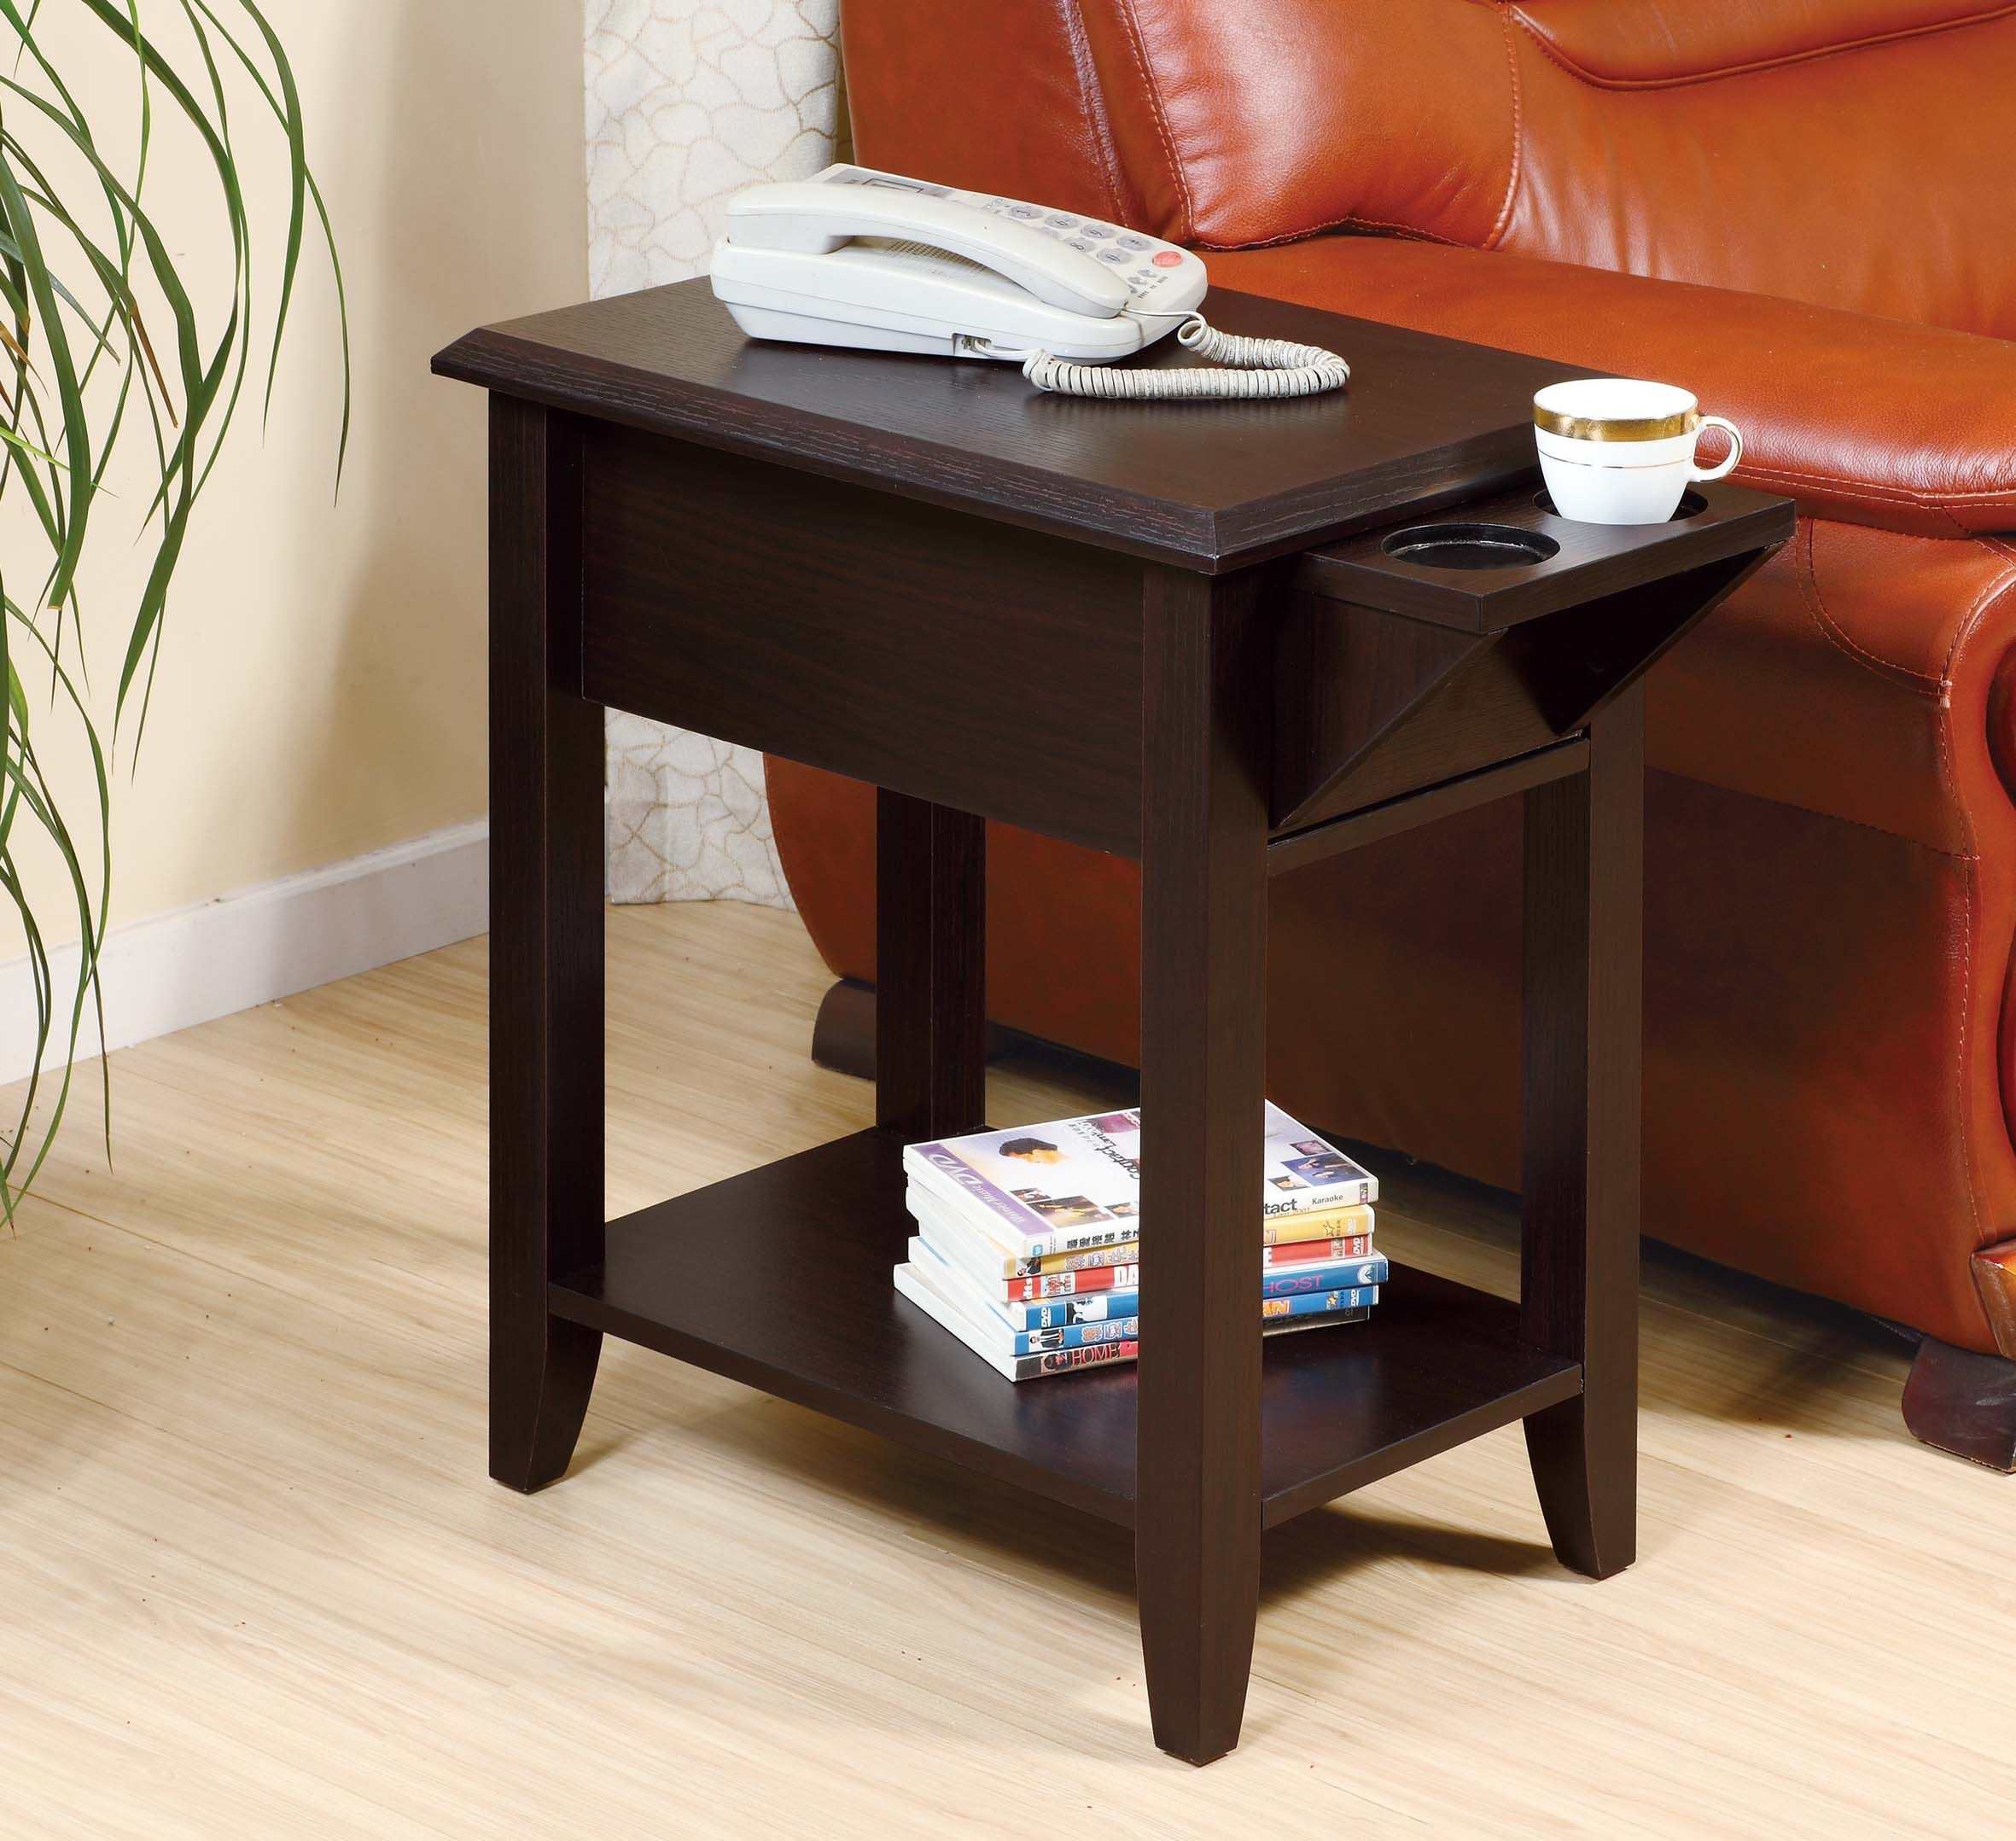 16802 Chairside Table Smart Home Cup Holder Display Stand Features An All Around